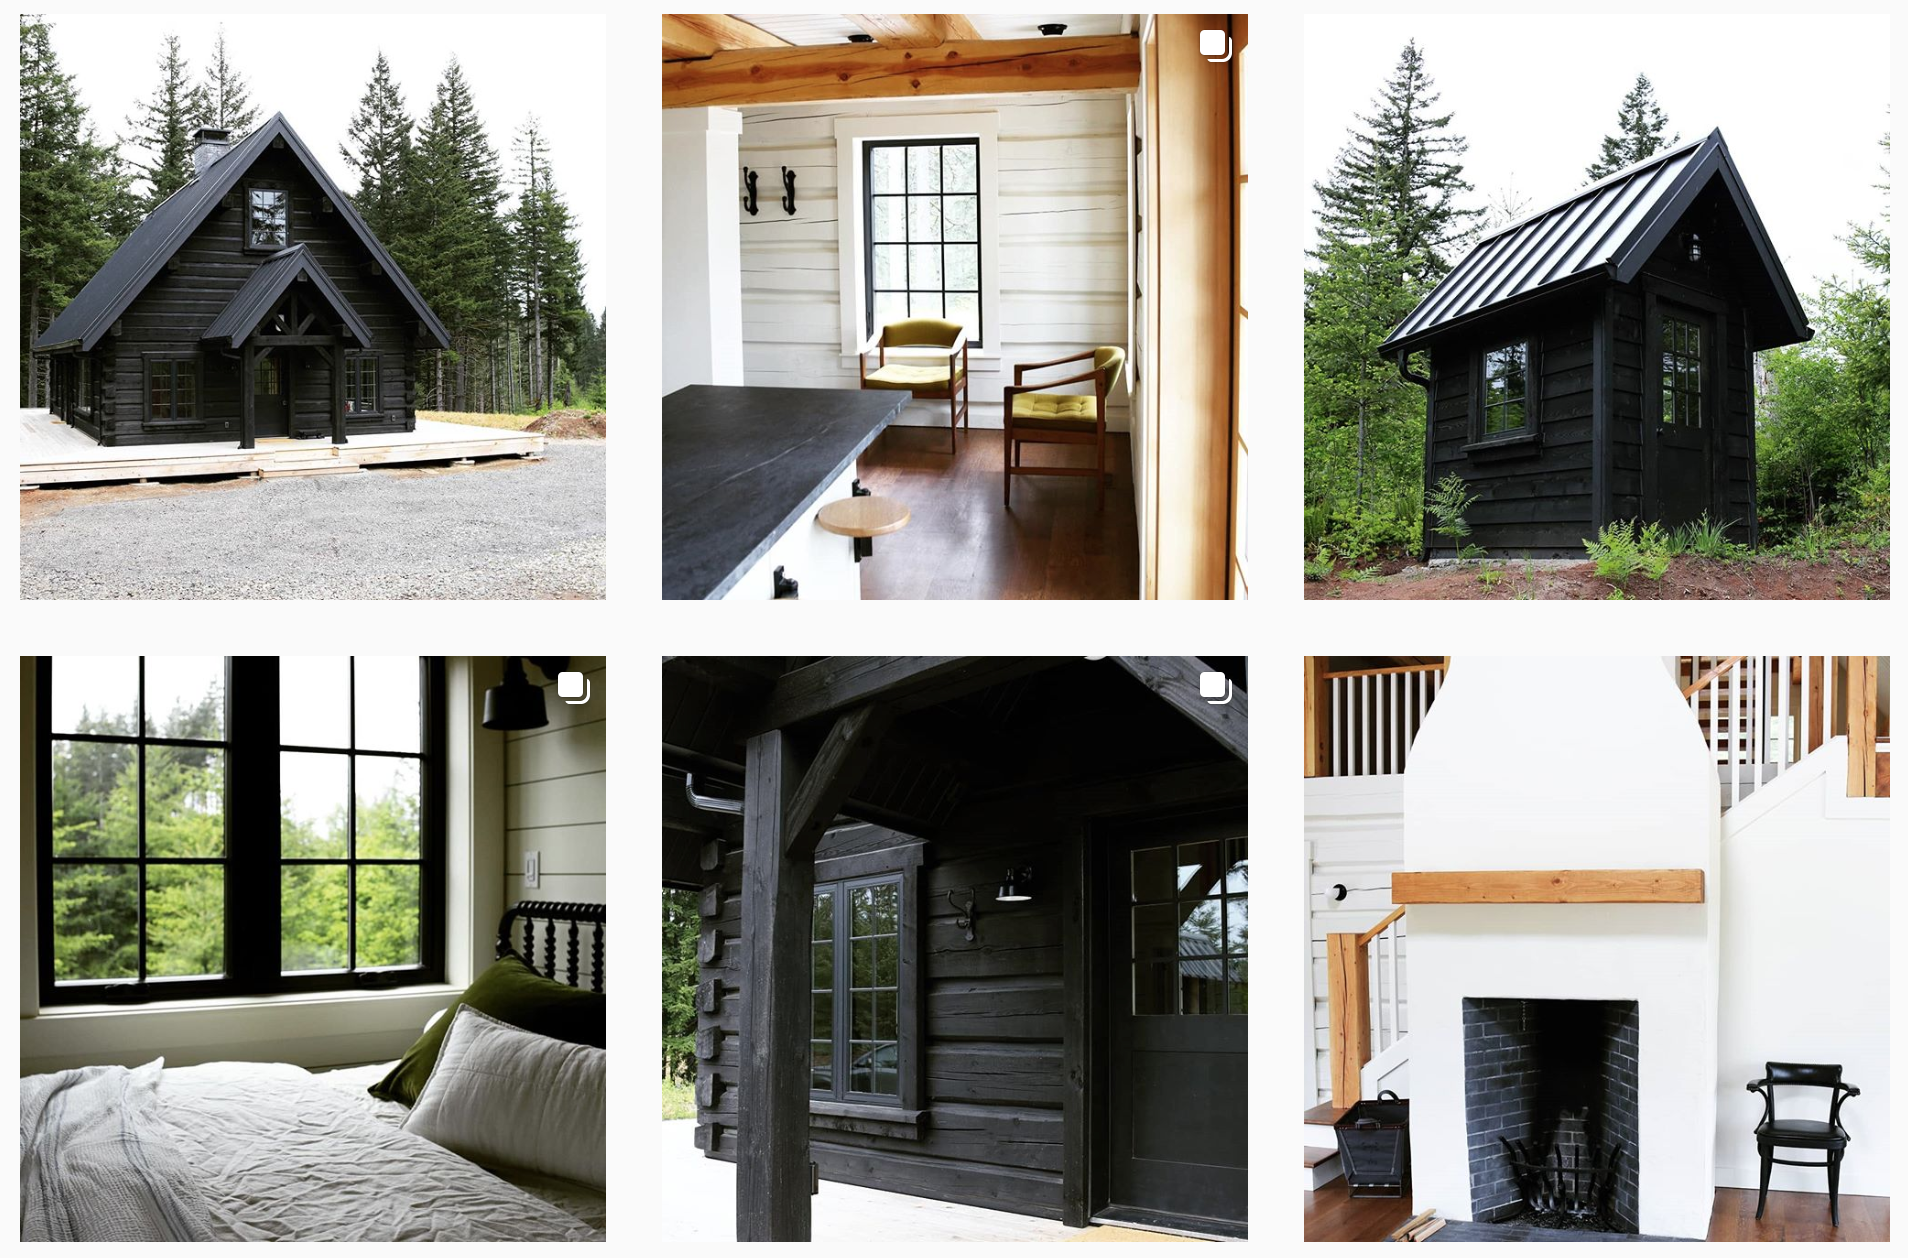 Blackwood cabin instagram feed grid